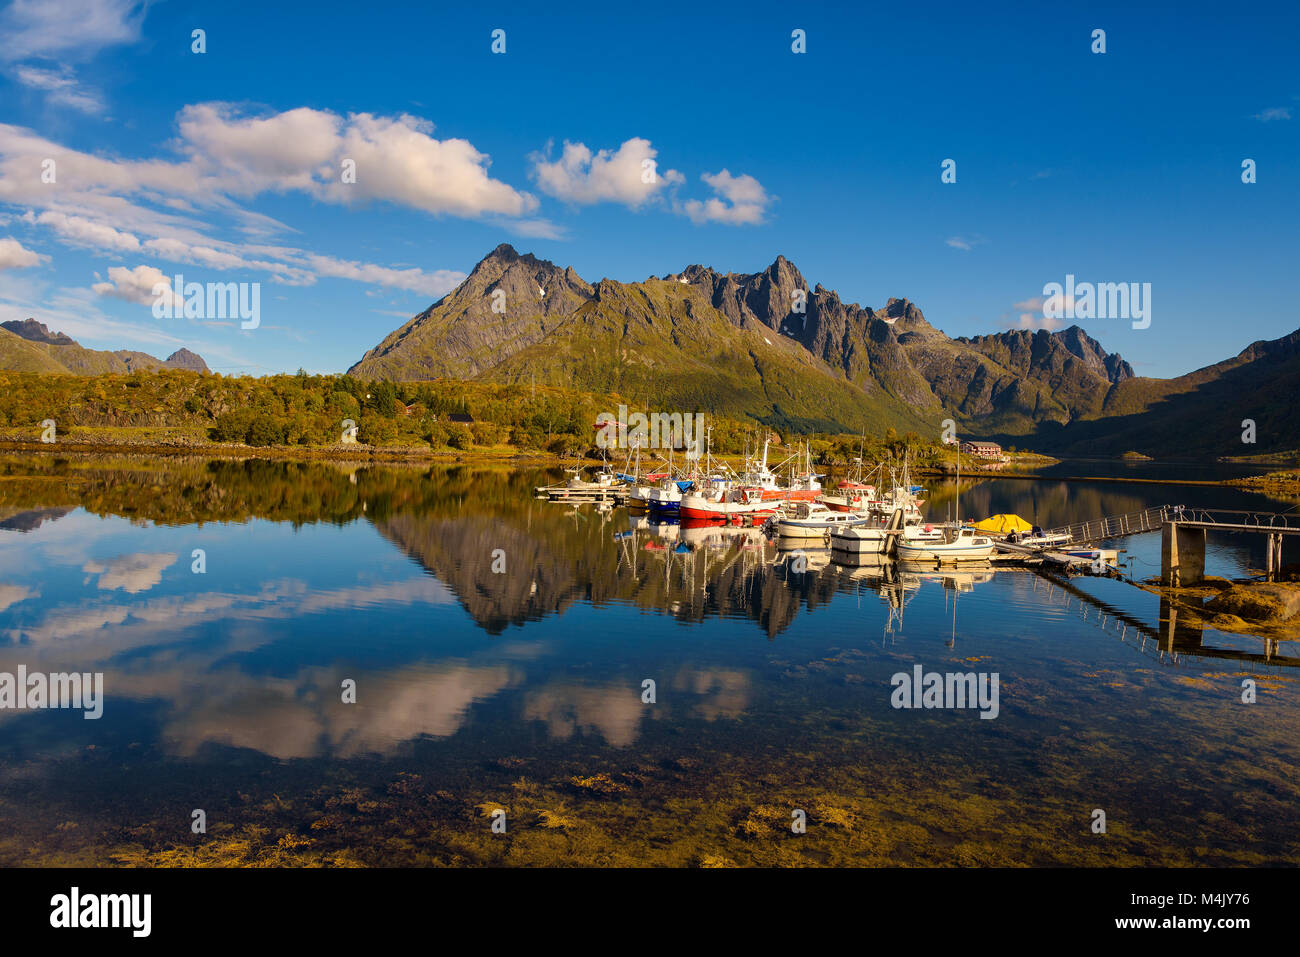 Fishing boats and yachts on Lofoten islands in Norway Stock Photo